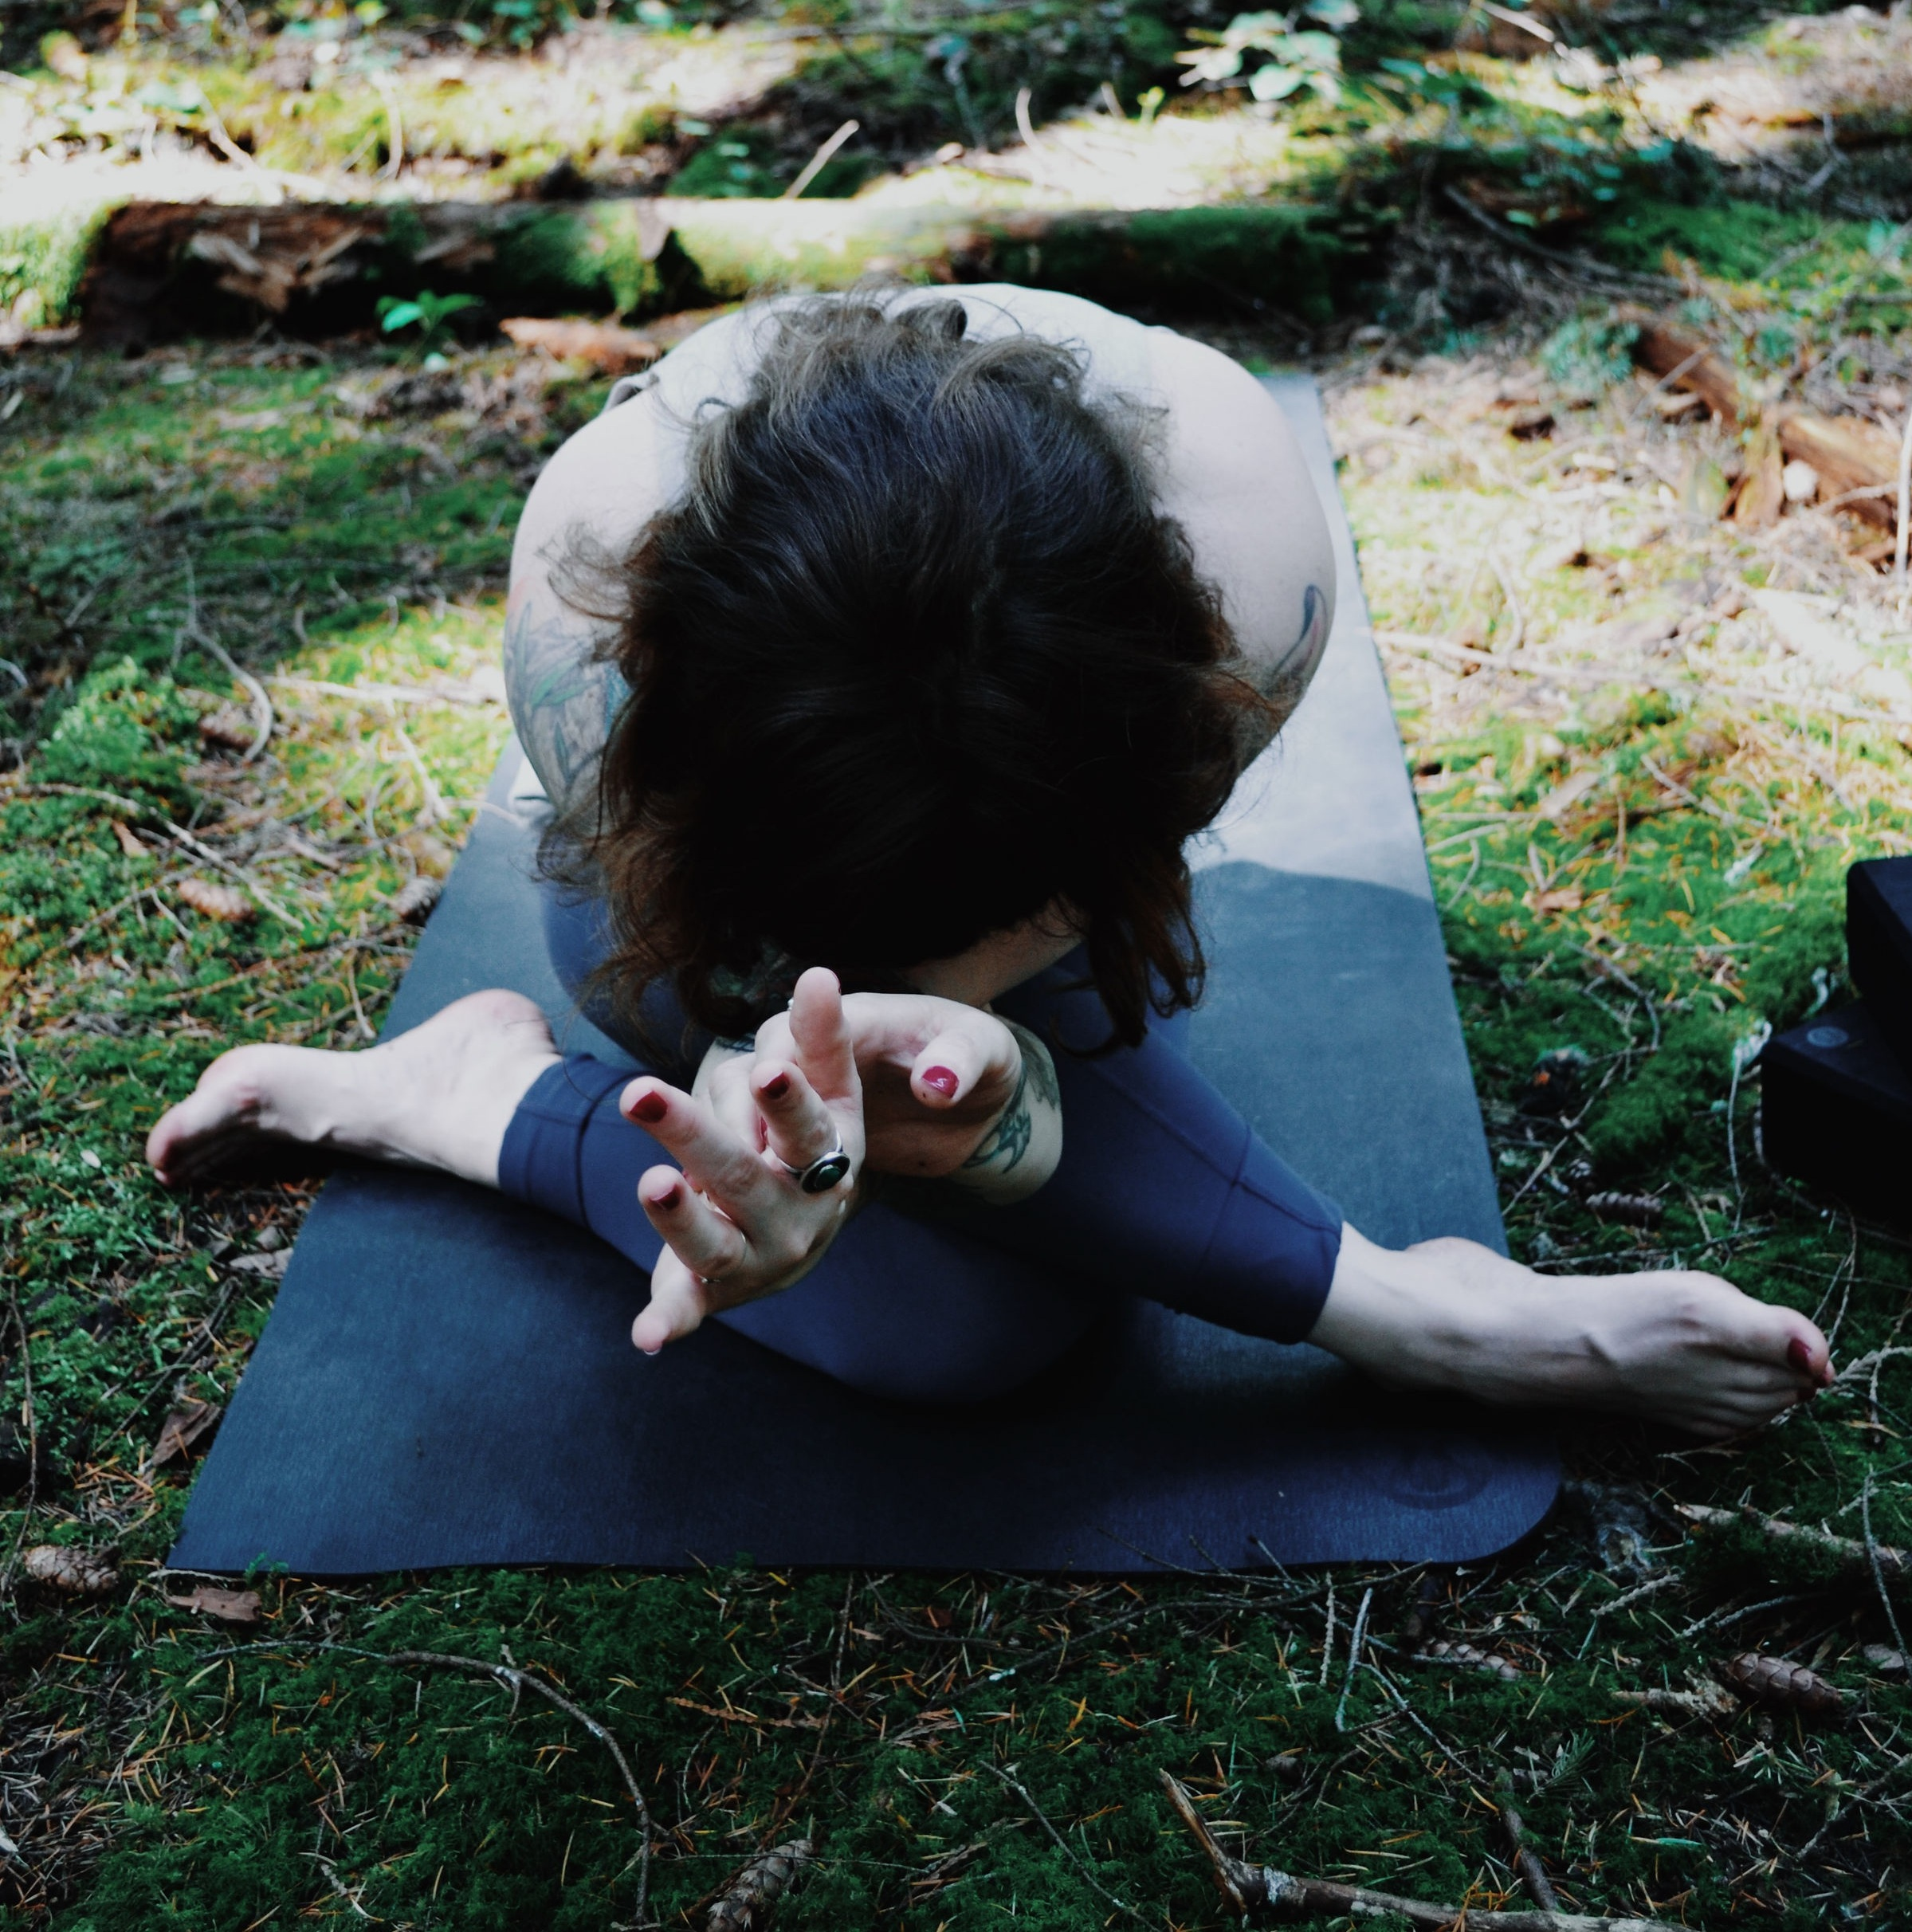 ABOUT YIN YOGA - Discover a practice of stillness and introspection to cultivate balance and ease.